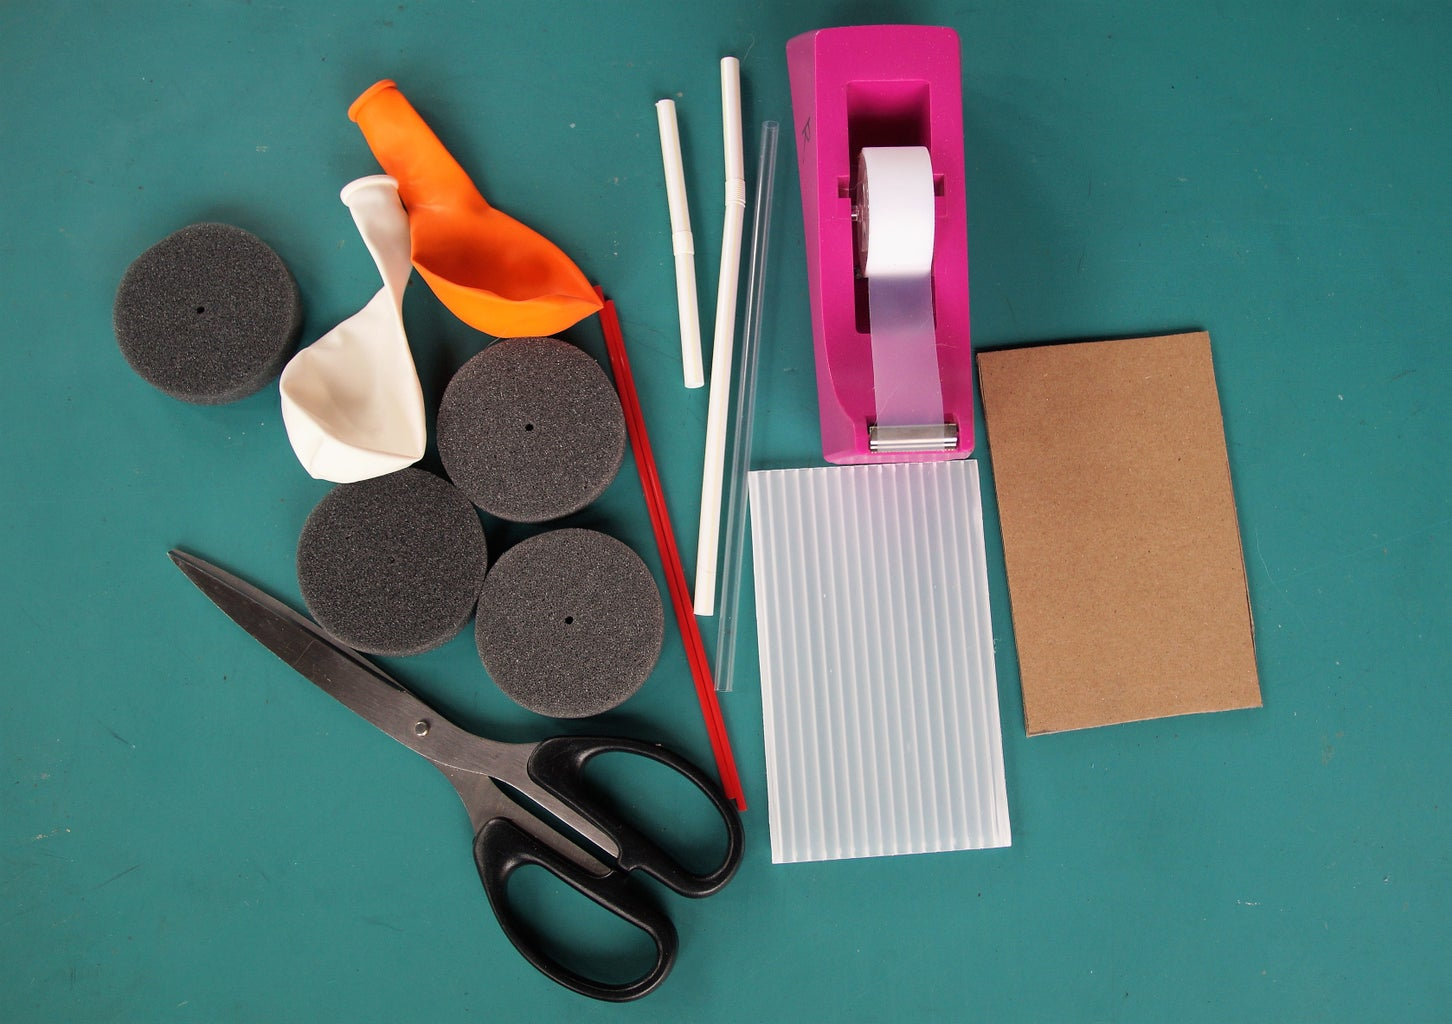 Your Supplies List